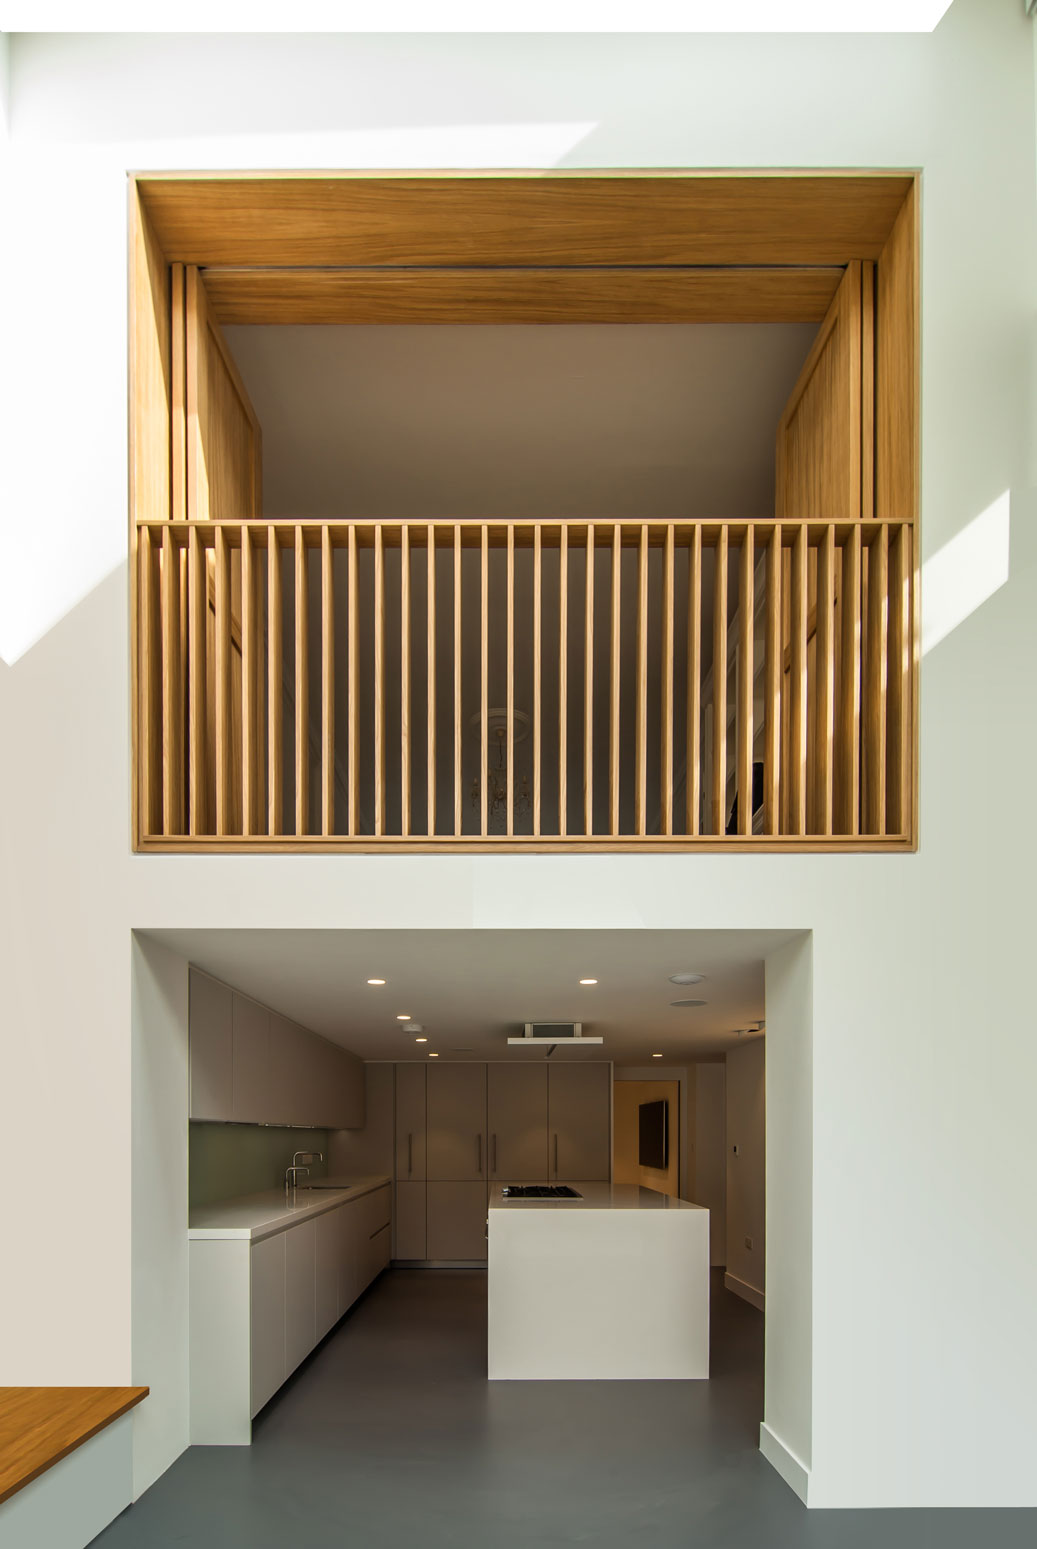 Internal balcony consisting of an Oak shutter frame balustrade being the focus amongst the white walls.